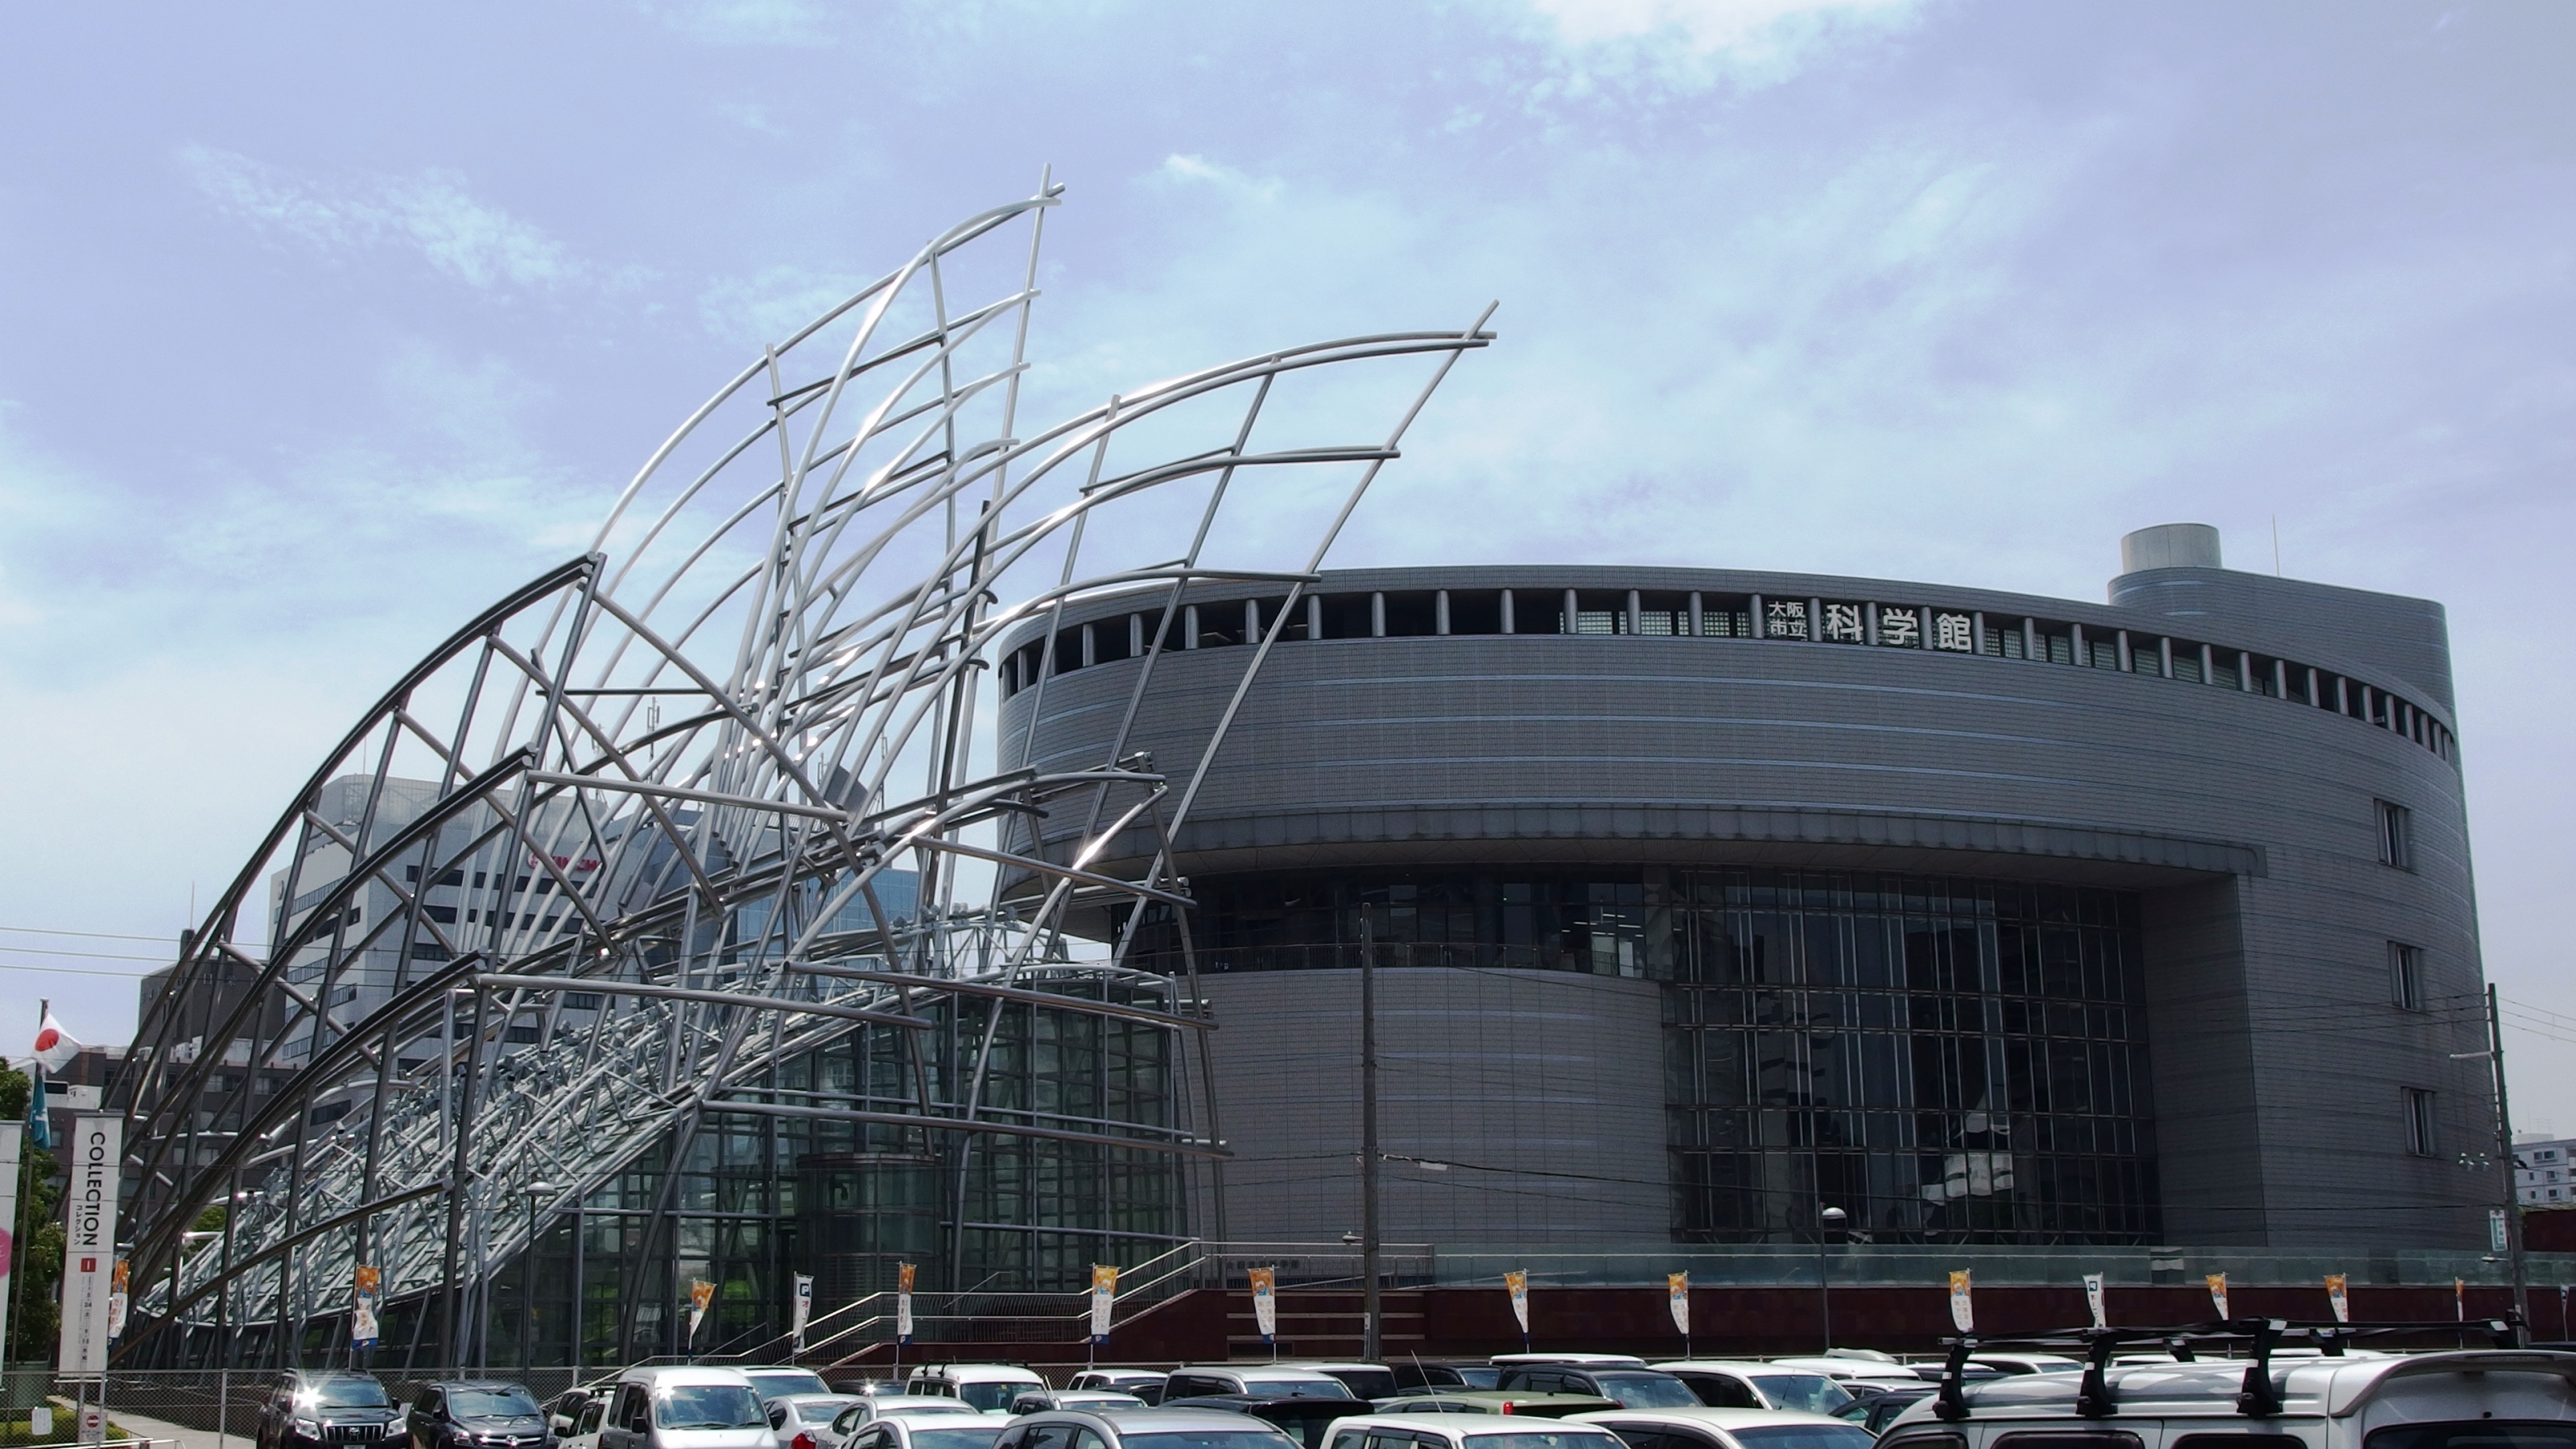 File:Osaka Science Museum in 201407.JPG - Wikimedia Commons